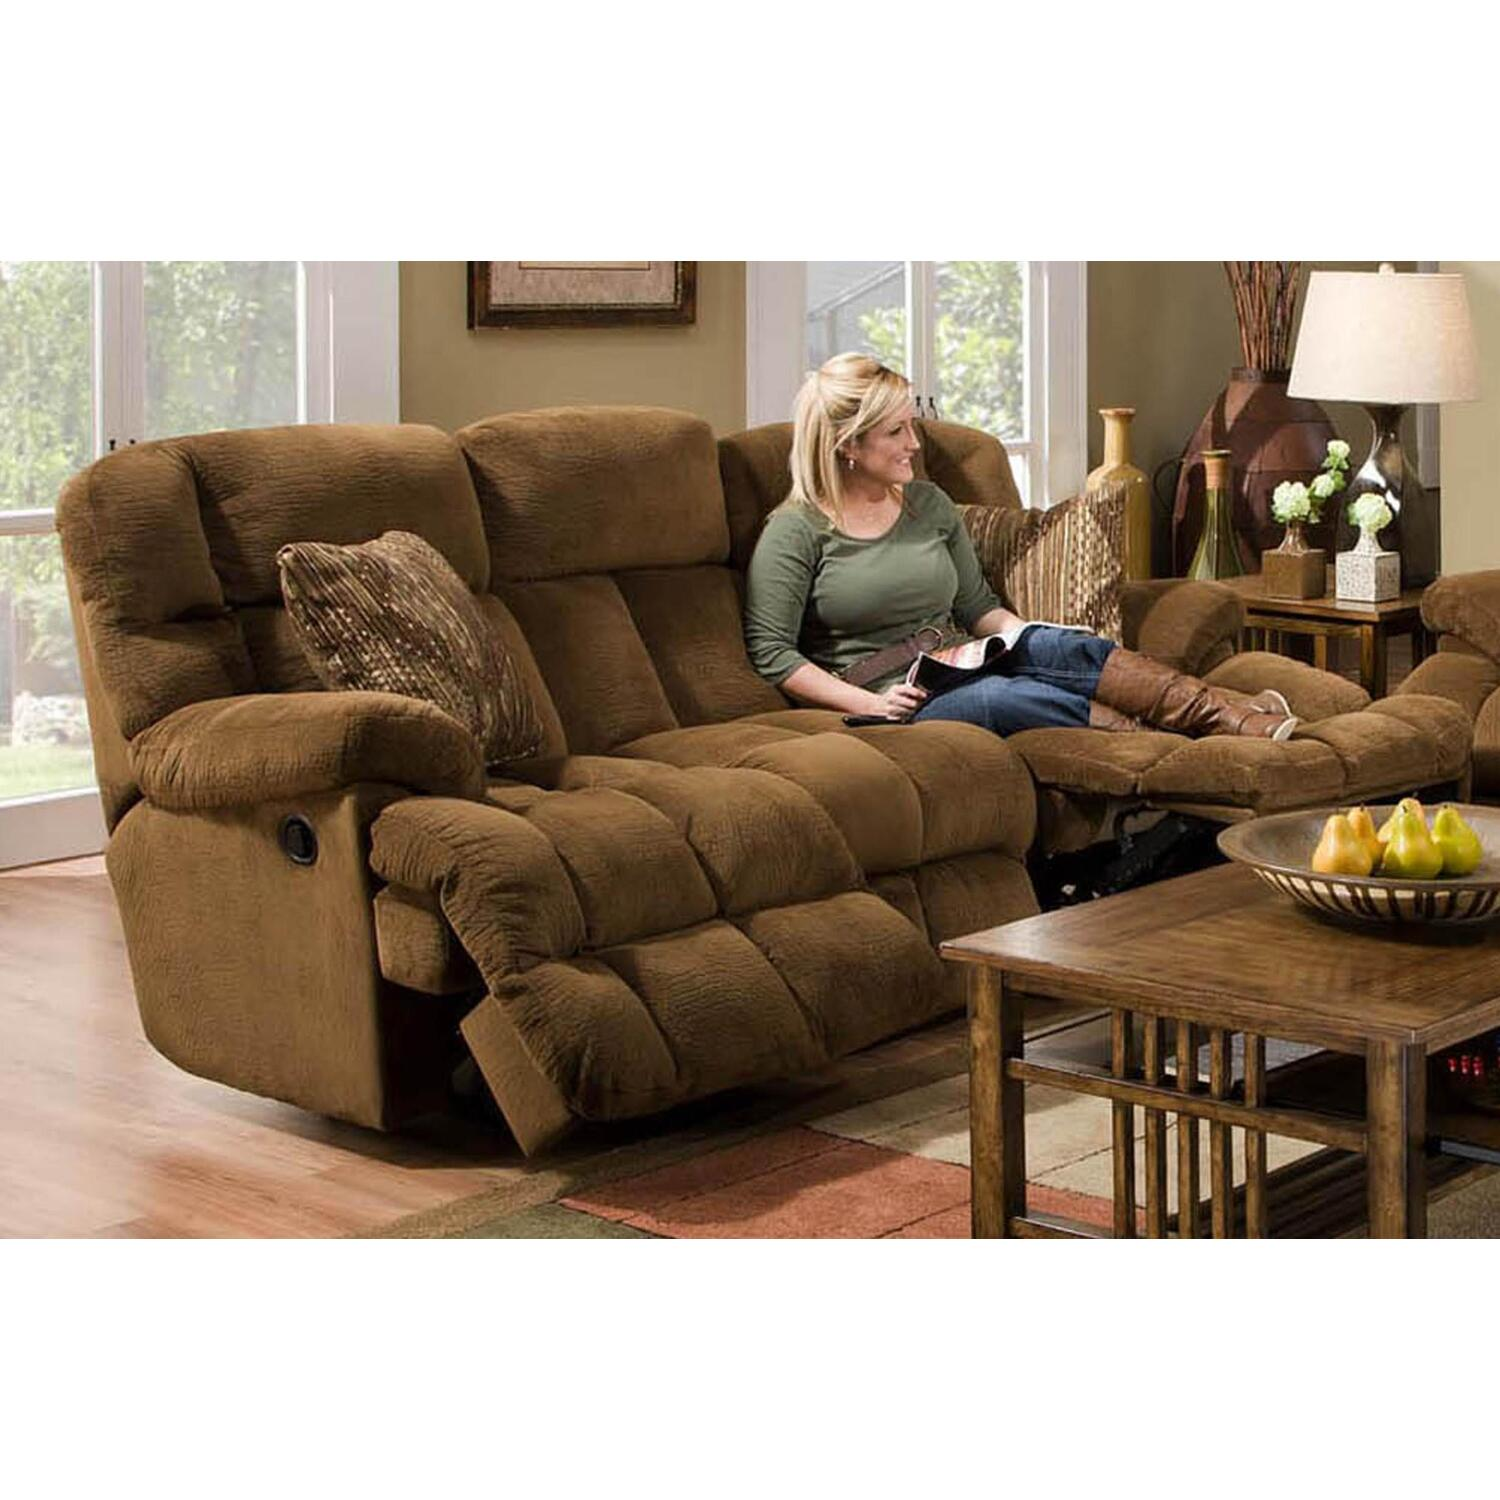 Concord Reclining Sofa From 1079 00 To 1349 00